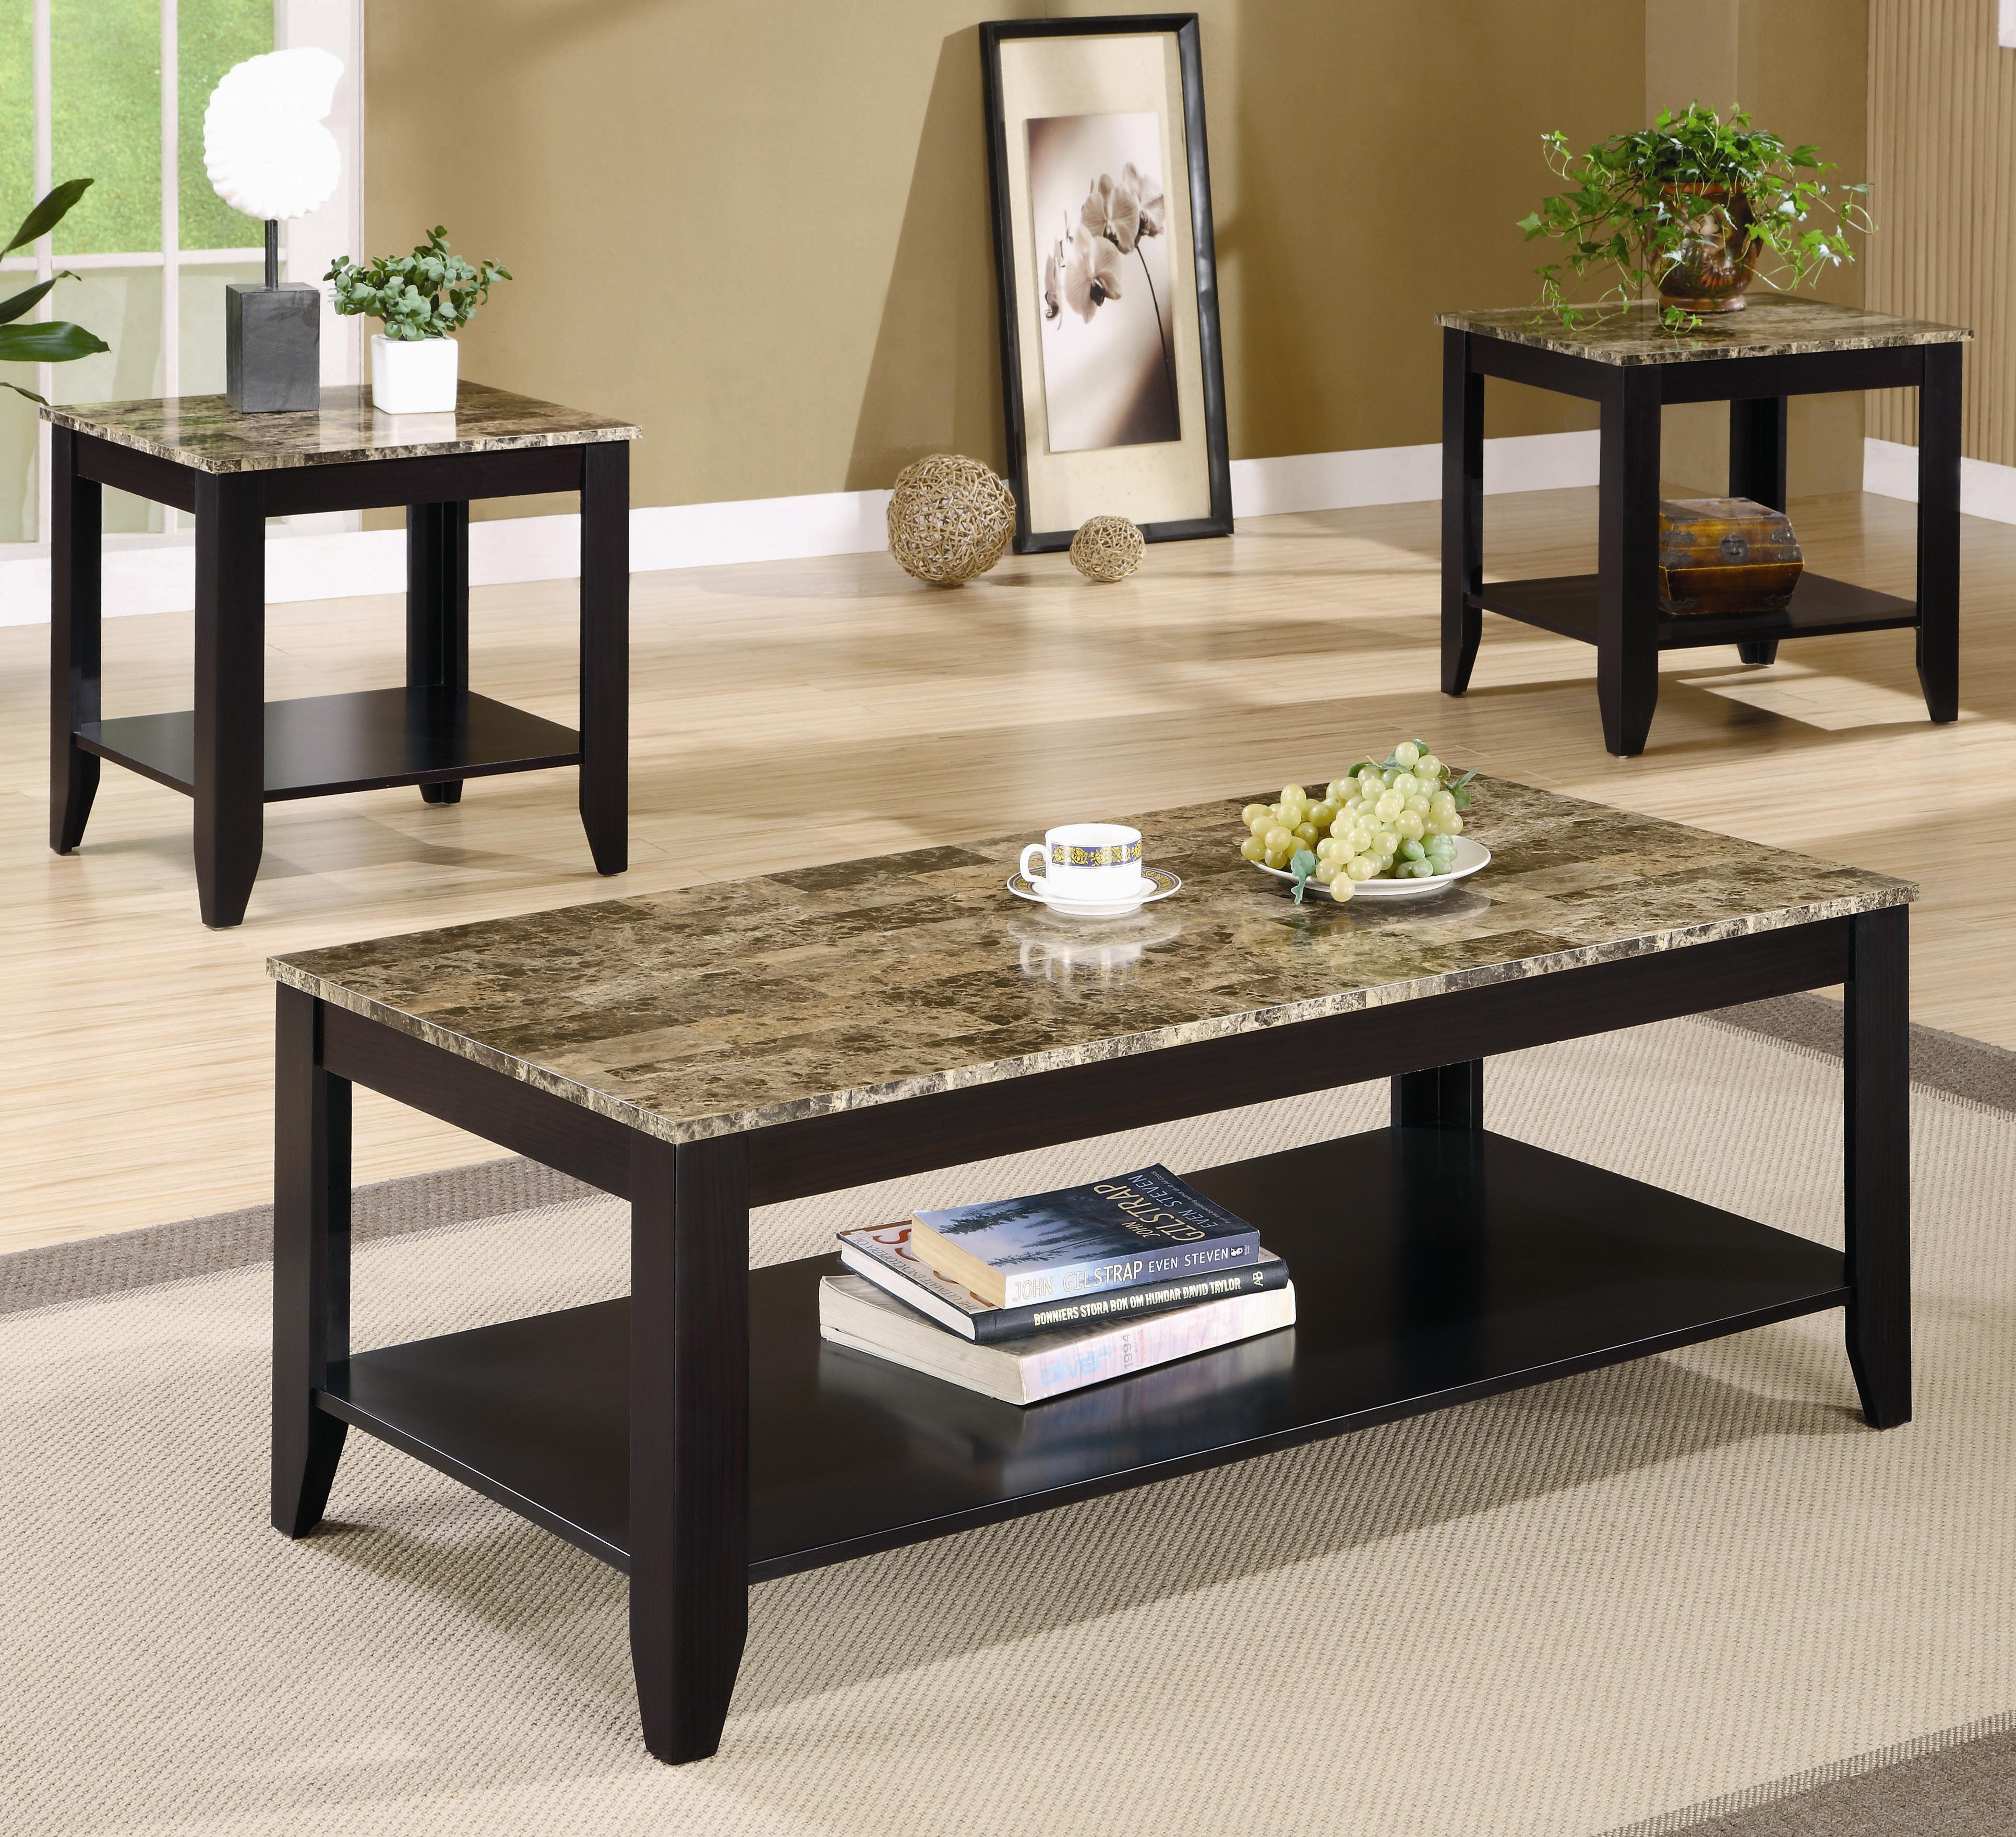 Coaster Occasional Table Sets Modern Coffee Table and End Table Set - Coaster Fine Furniture & Coaster Occasional Table Sets Modern Coffee Table and End Table Set ...